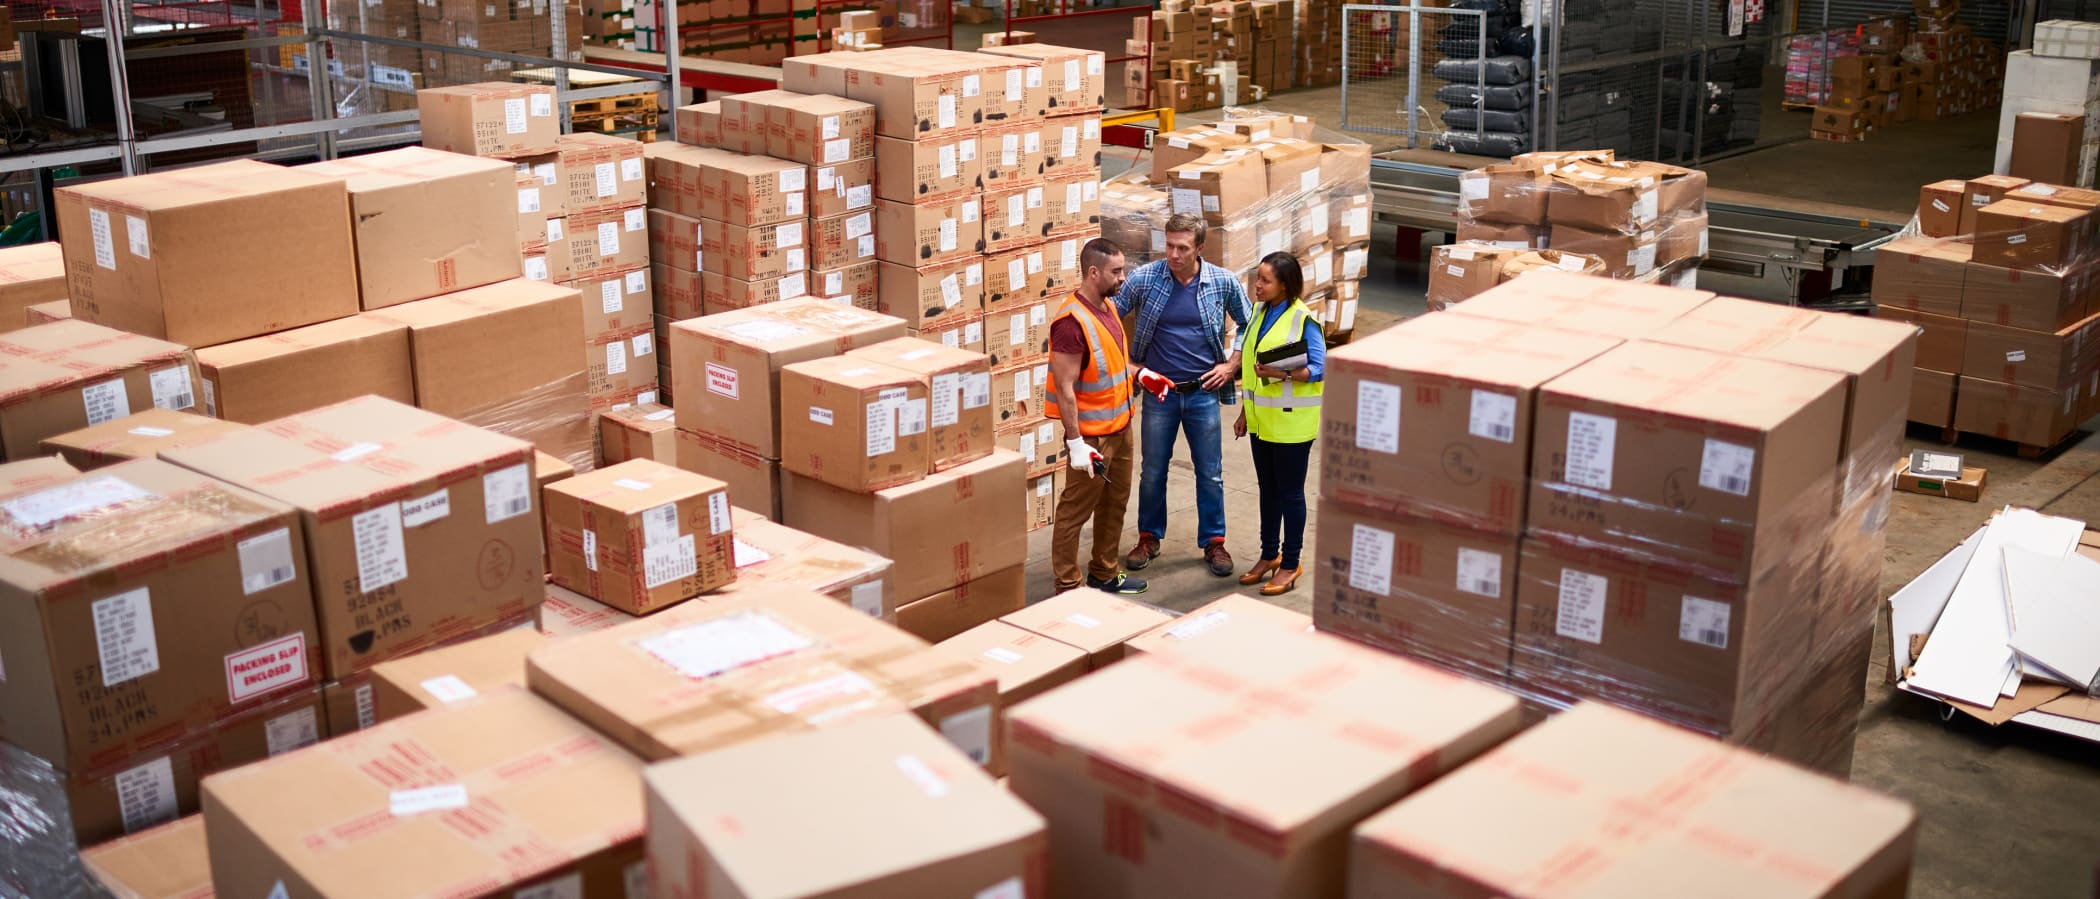 Image result for Good Warehouse istock